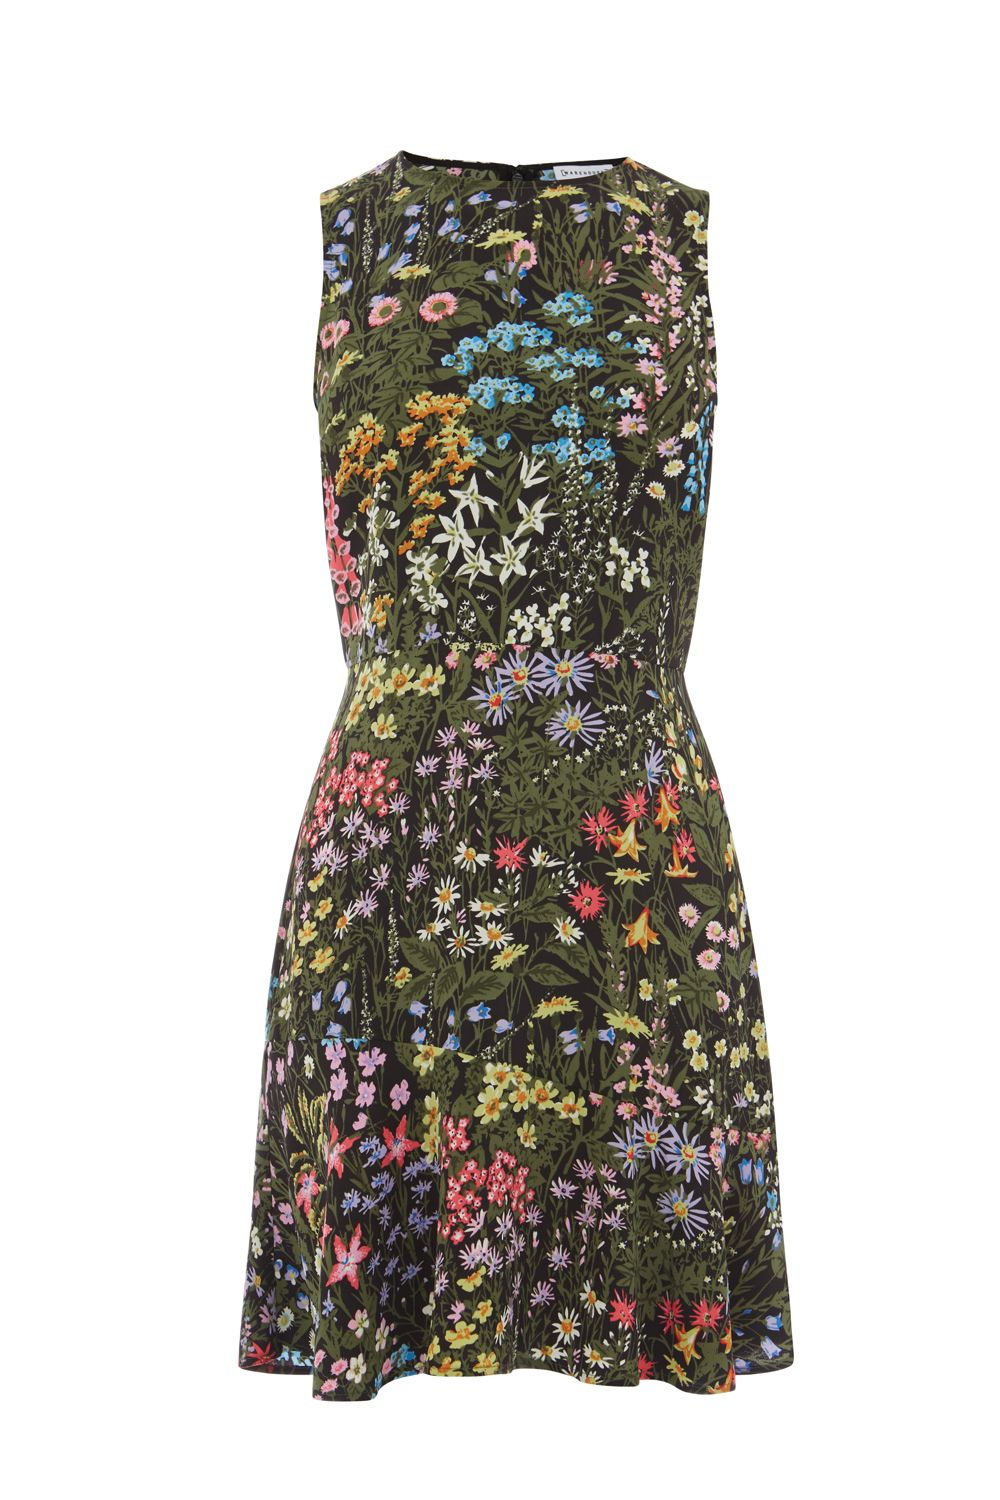 Warehouse Wild Garden Dress, Multi-Coloured